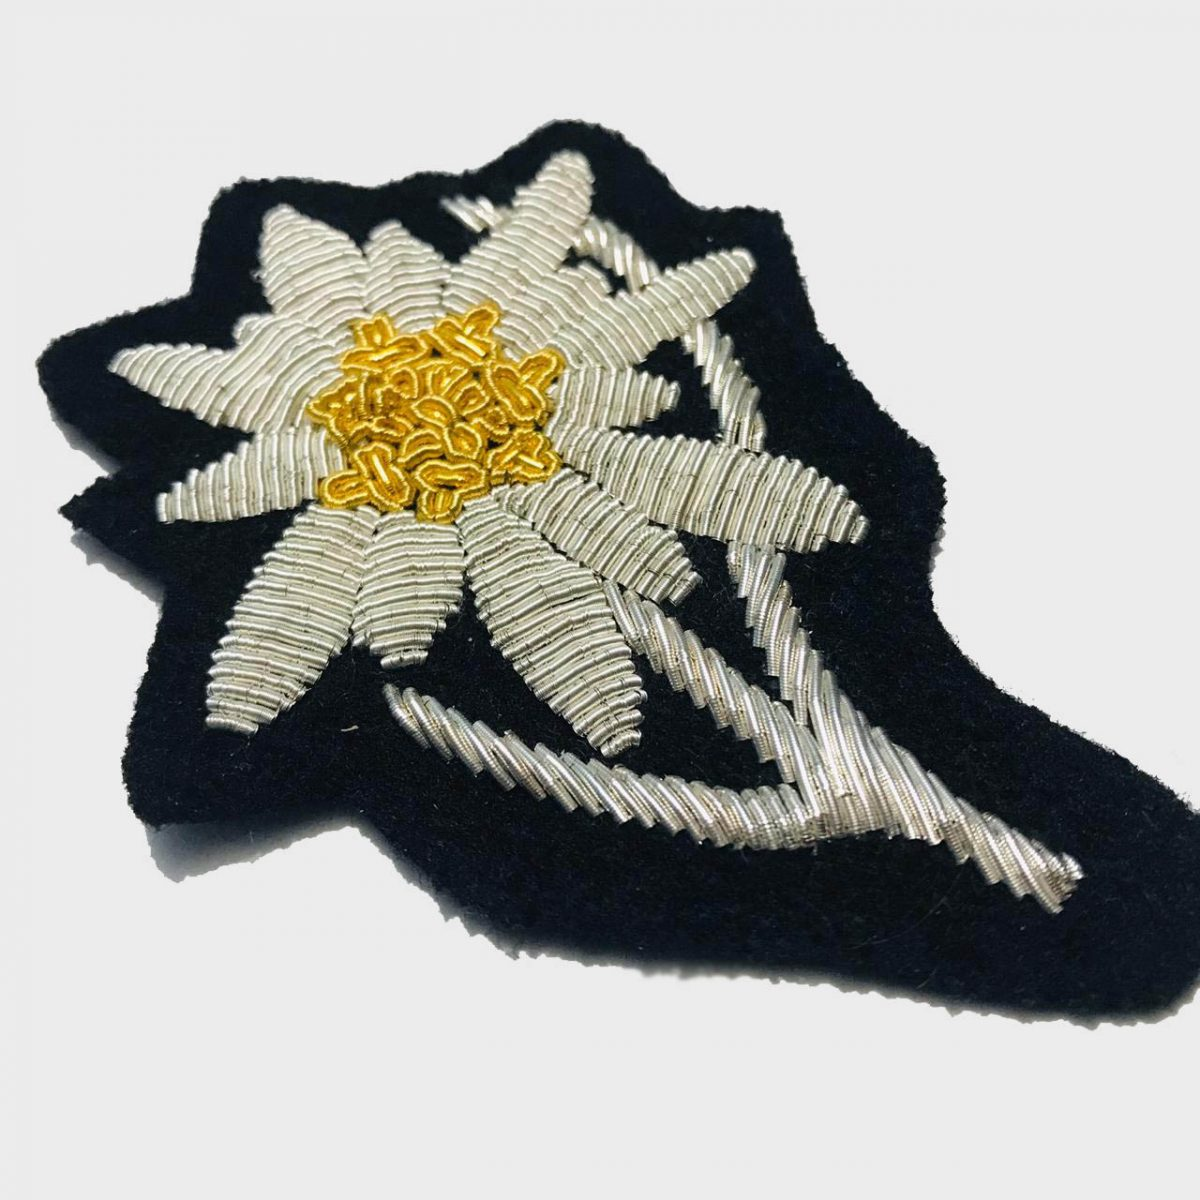 Edelweiss Flower Bullion Embroidered Badge , Sew-on Applique Patch - Edelweiss Embroidered PatchSize # 3 inchesSew-on backingSilver bullion wires embroidered on felt  4